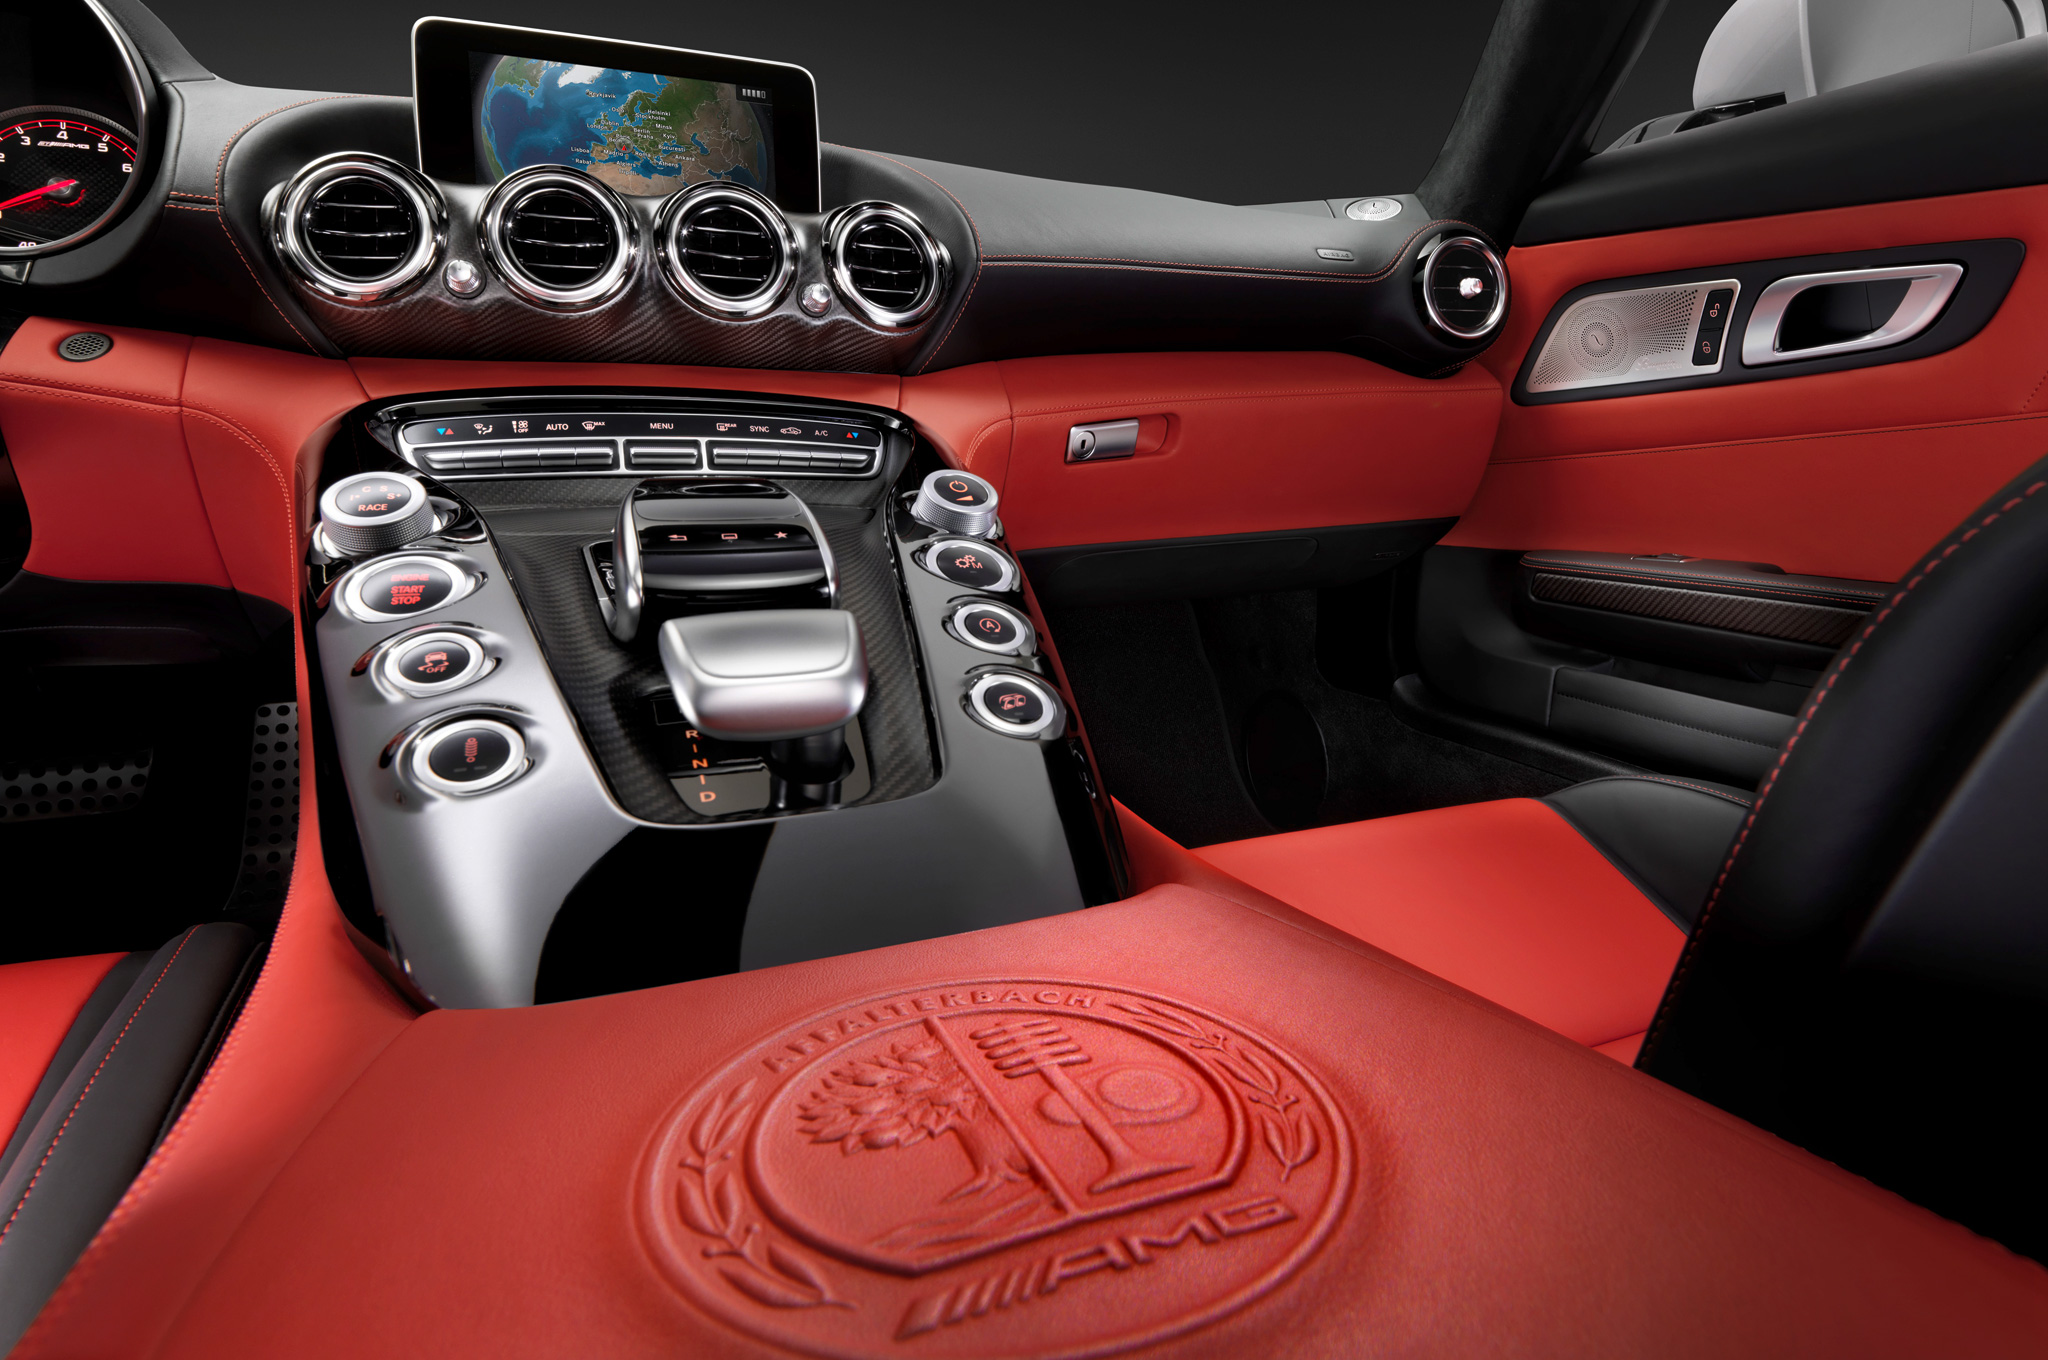 Mercedes AMG GT Shows Off its Dapper and Sporty Interior